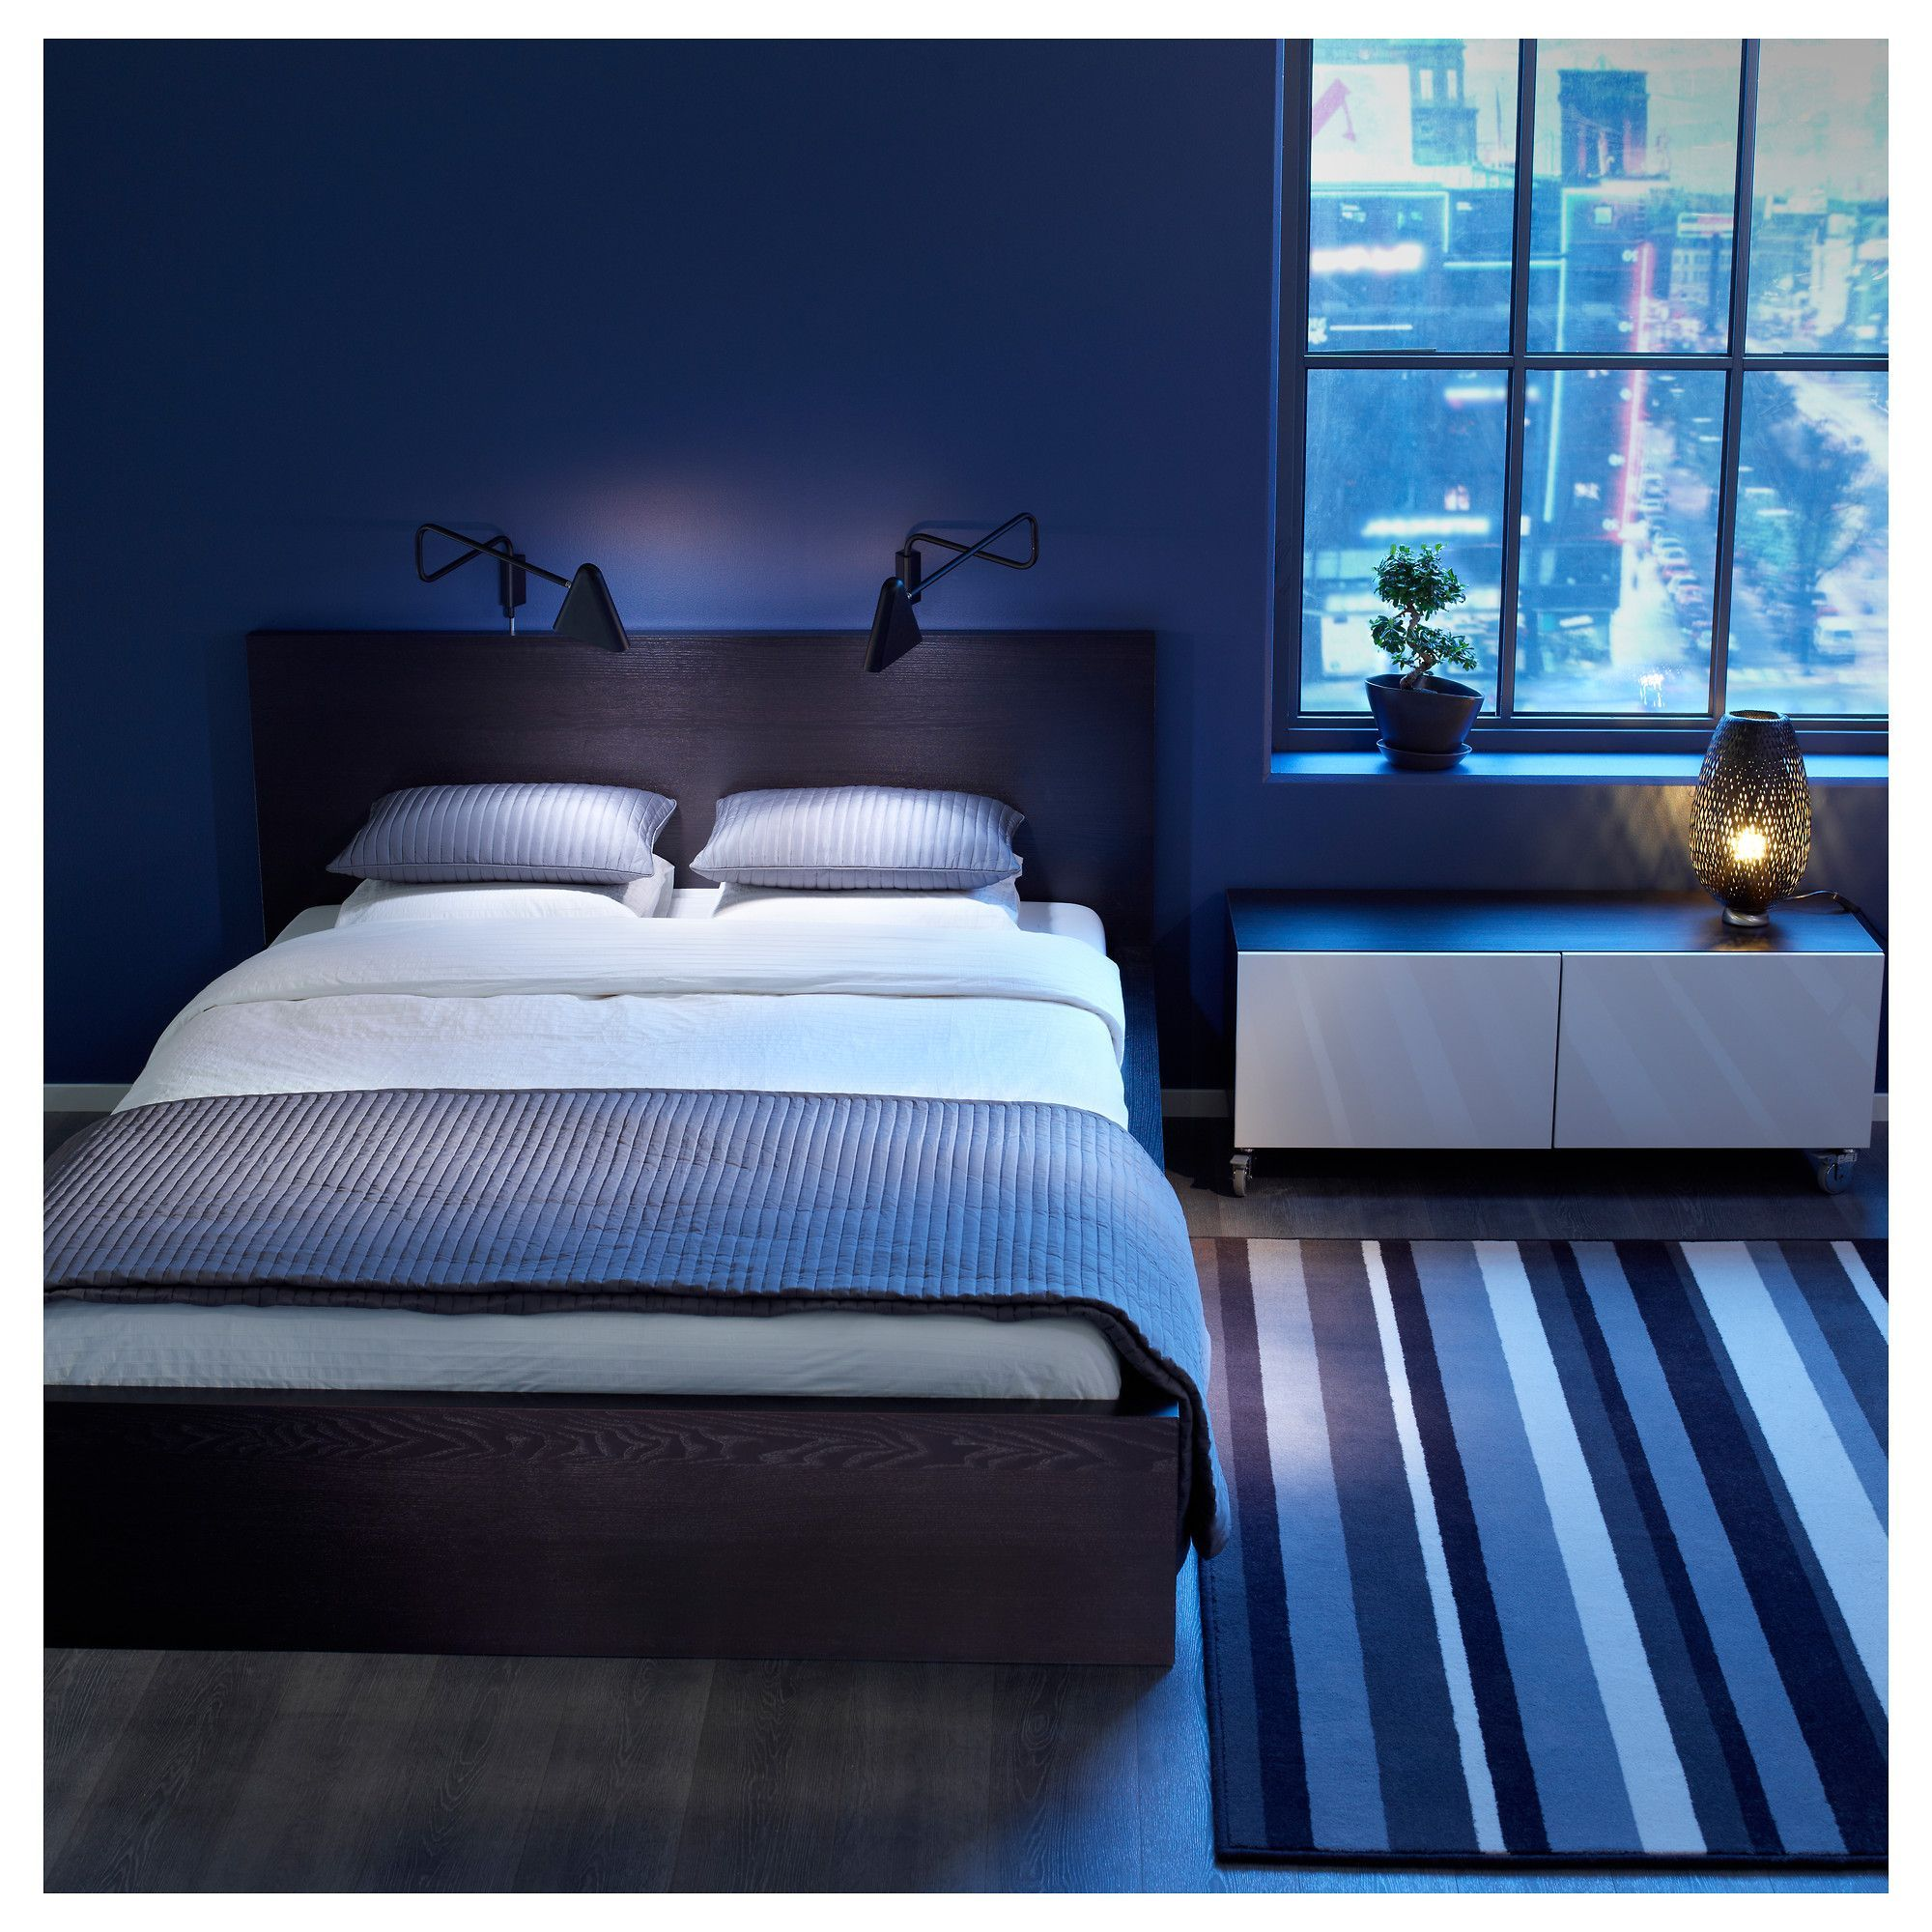 Best blue themed bedroom decorations with dark wooden platform bed plus white bedding plus brown wooden headbaord plus white cushions and striped carpet